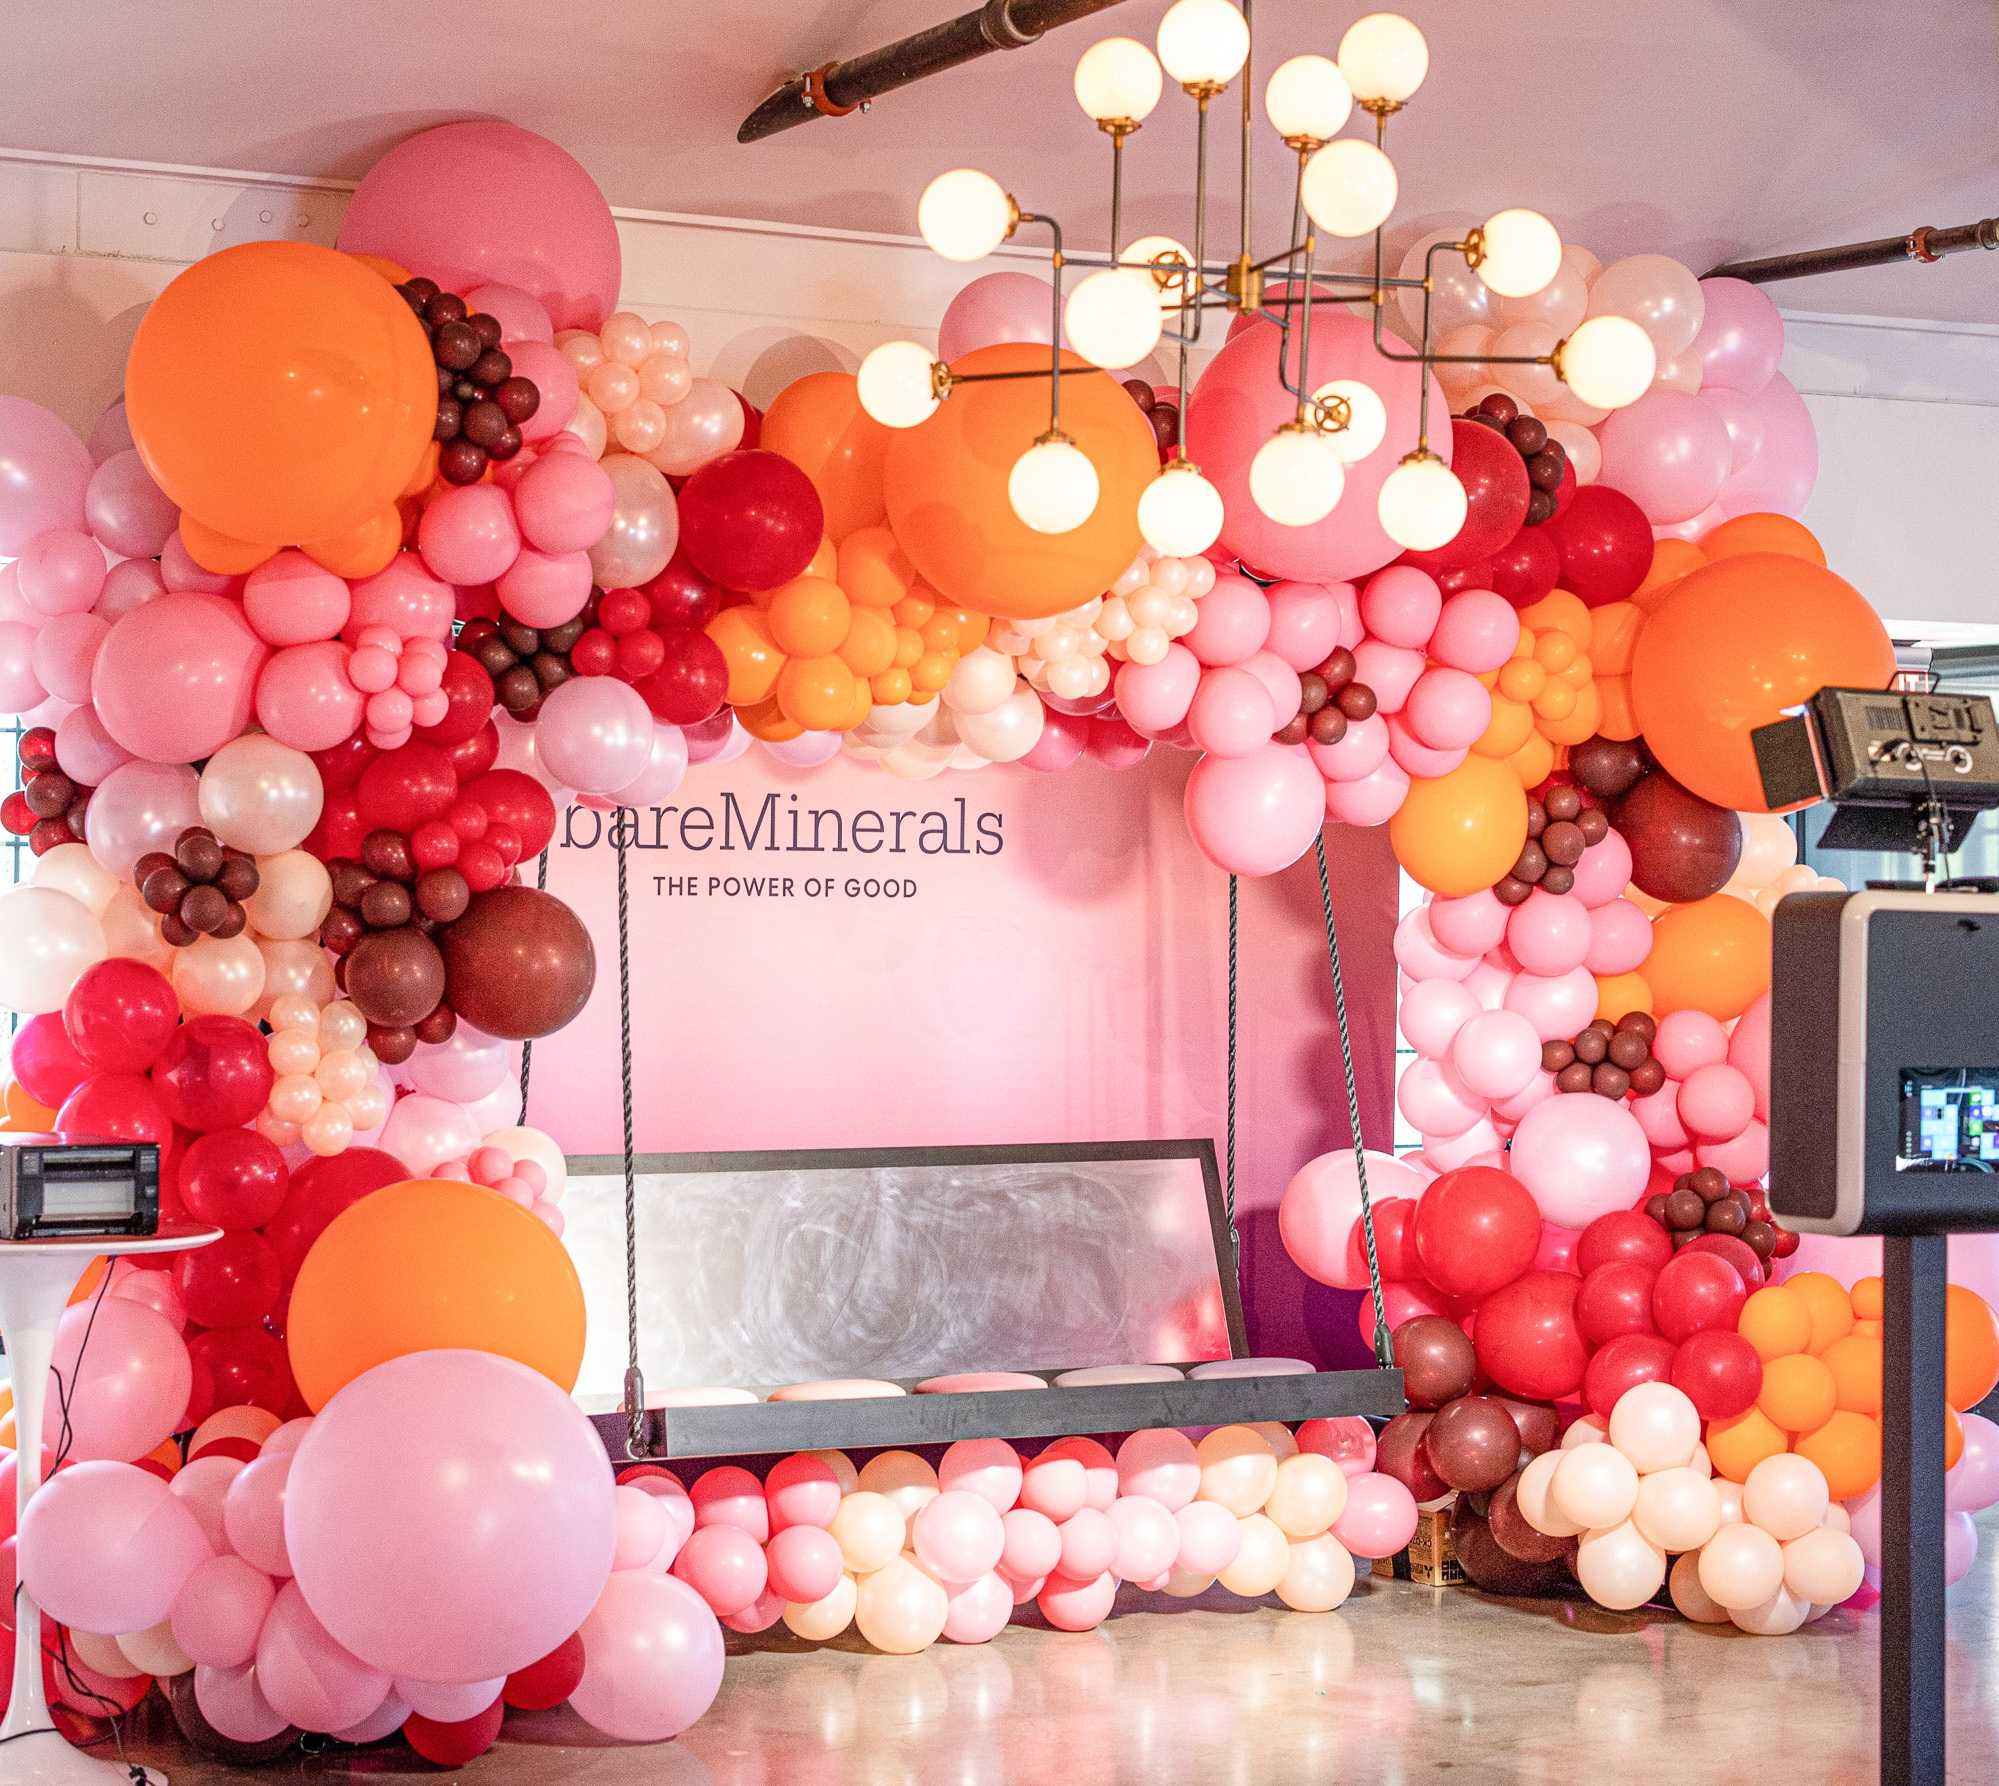 bare minerals product launch